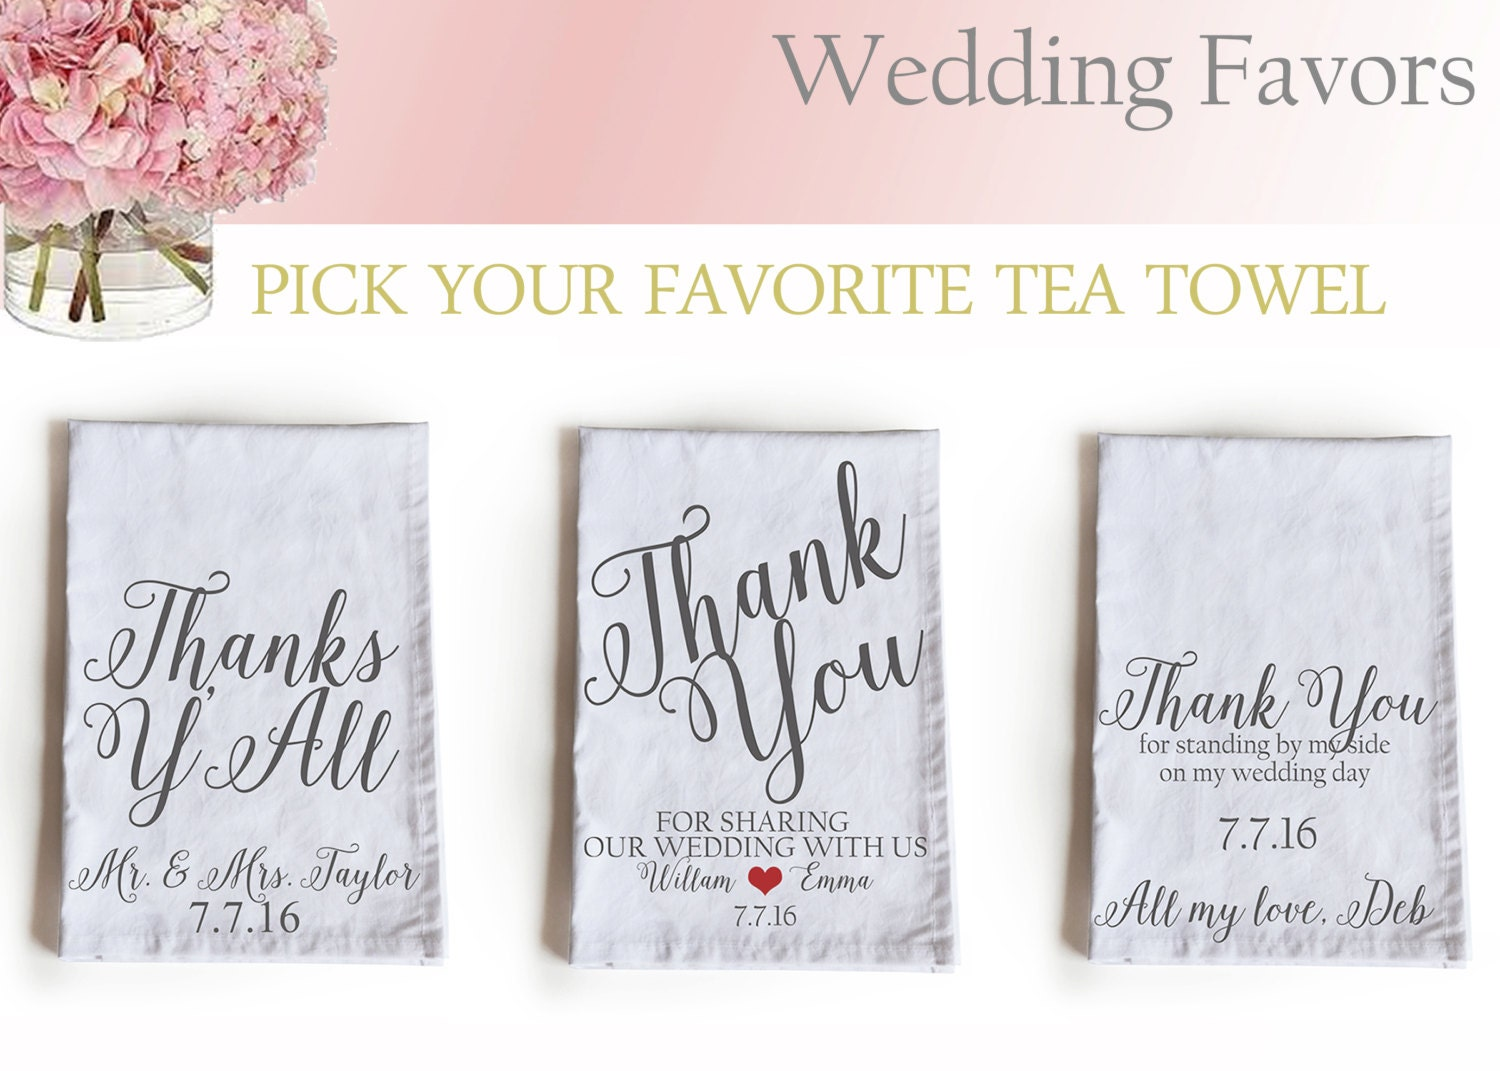 Personalised Wedding Gifts Towels : Wedding Favor Tea Towels Kitchen Towels by AmoreBeaute on Etsy